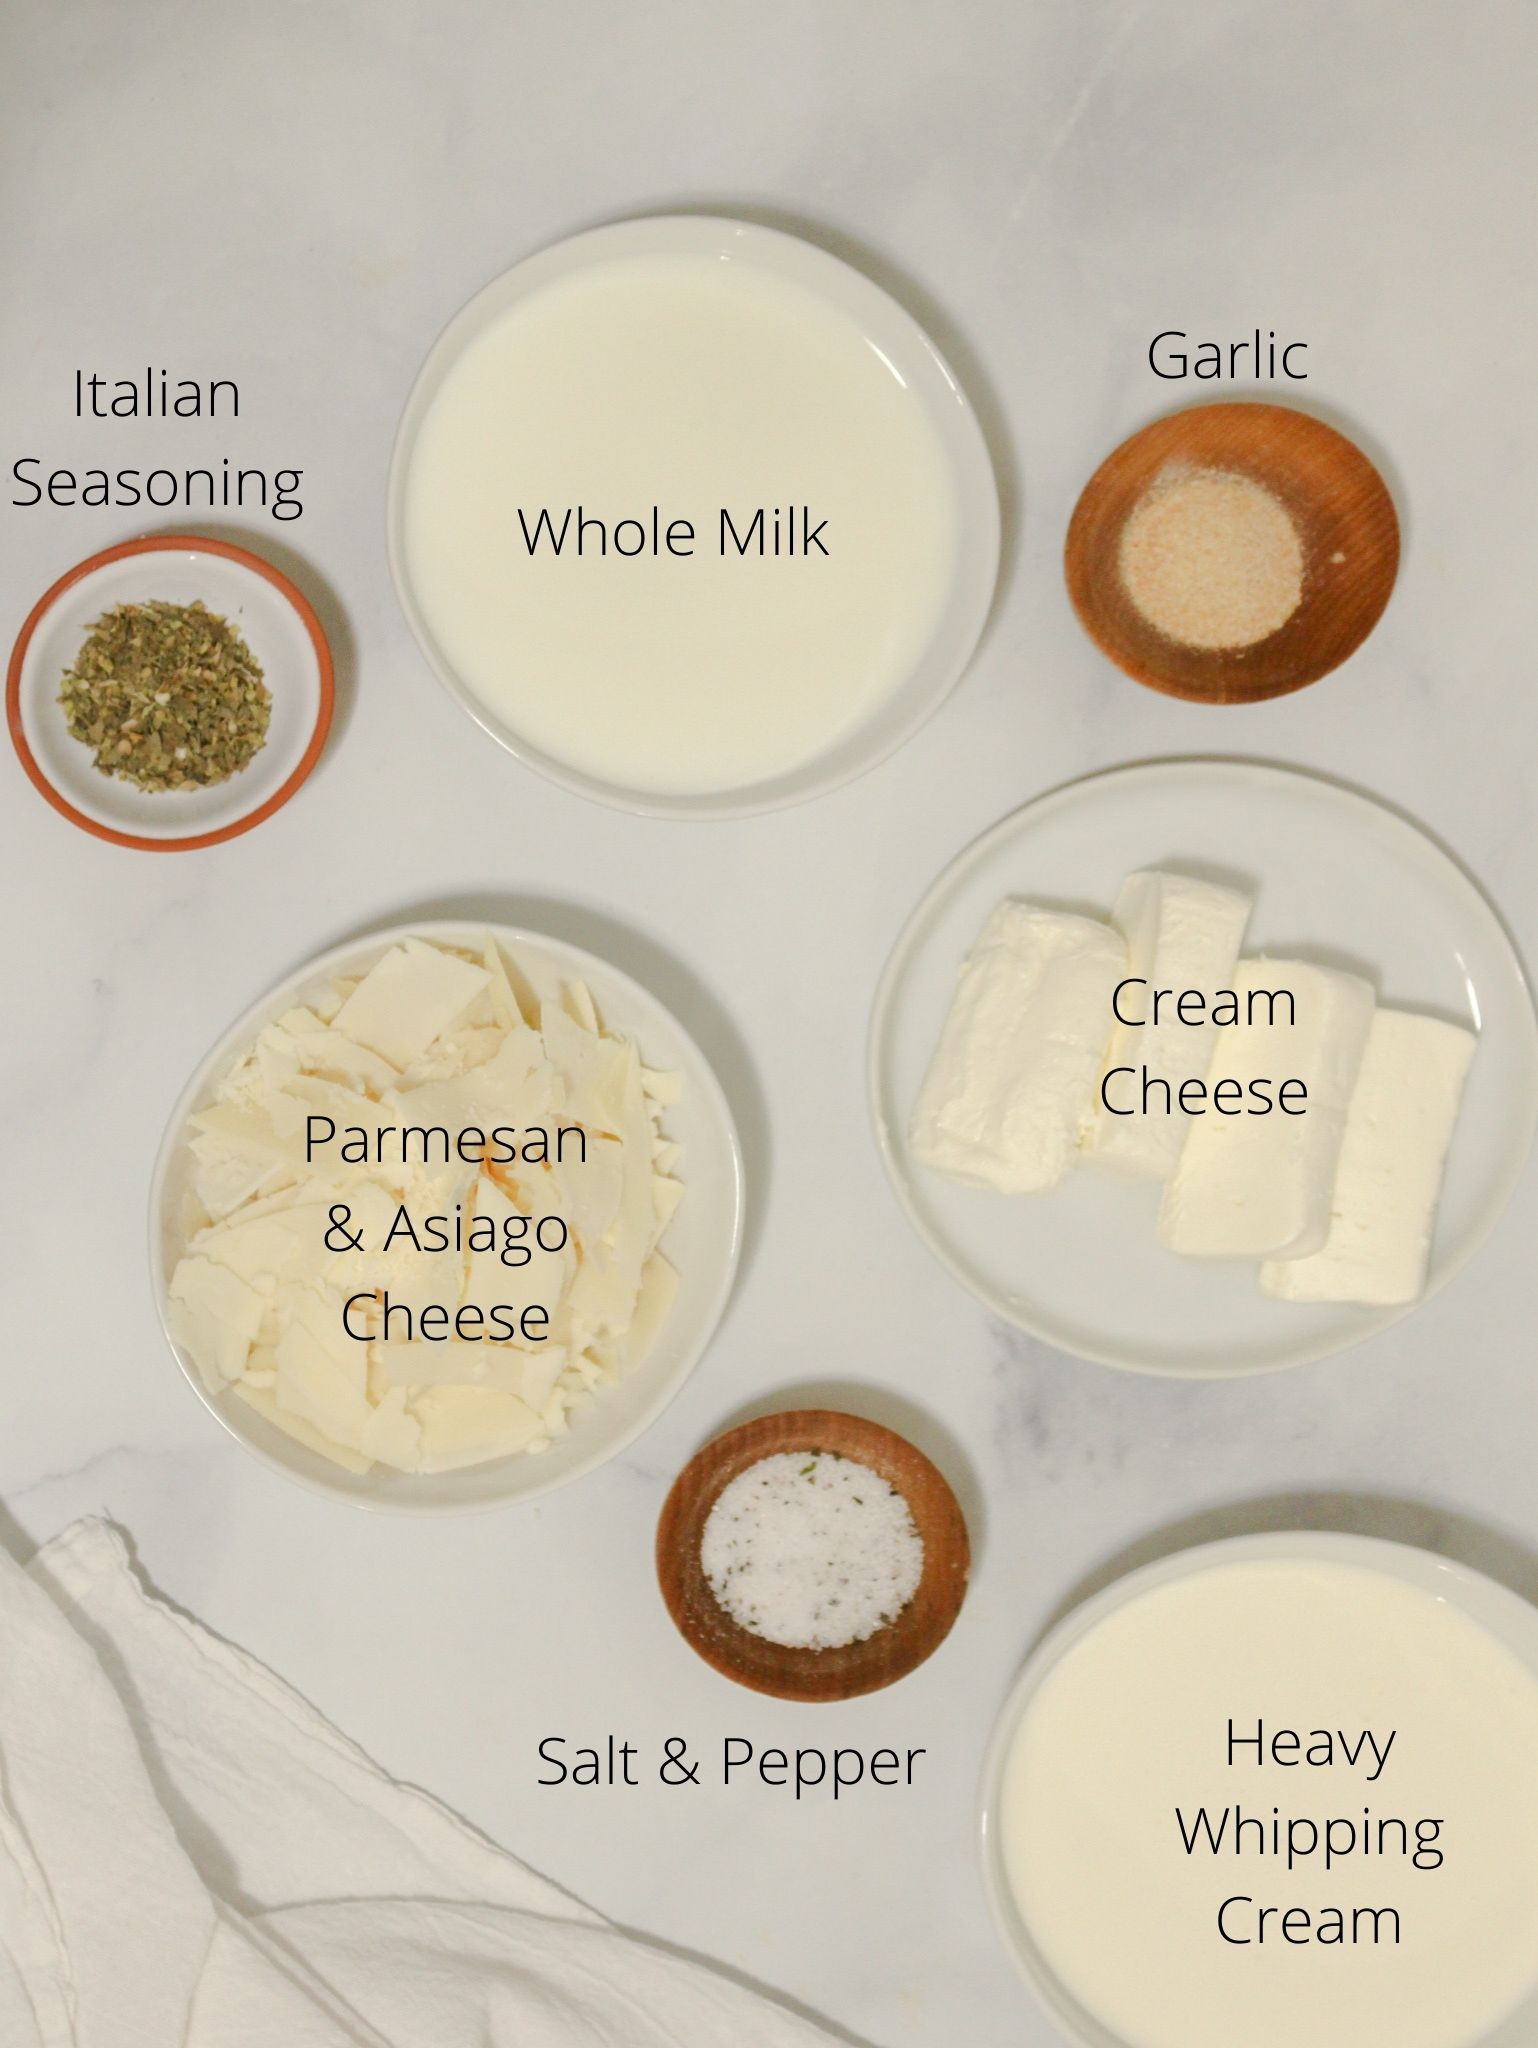 Homemade alfredo sauce ingredients laid out including milk, heavy cream, cream cheese, parmesan and asiago cheese, italian seasoning, garlic and salt and pepper.